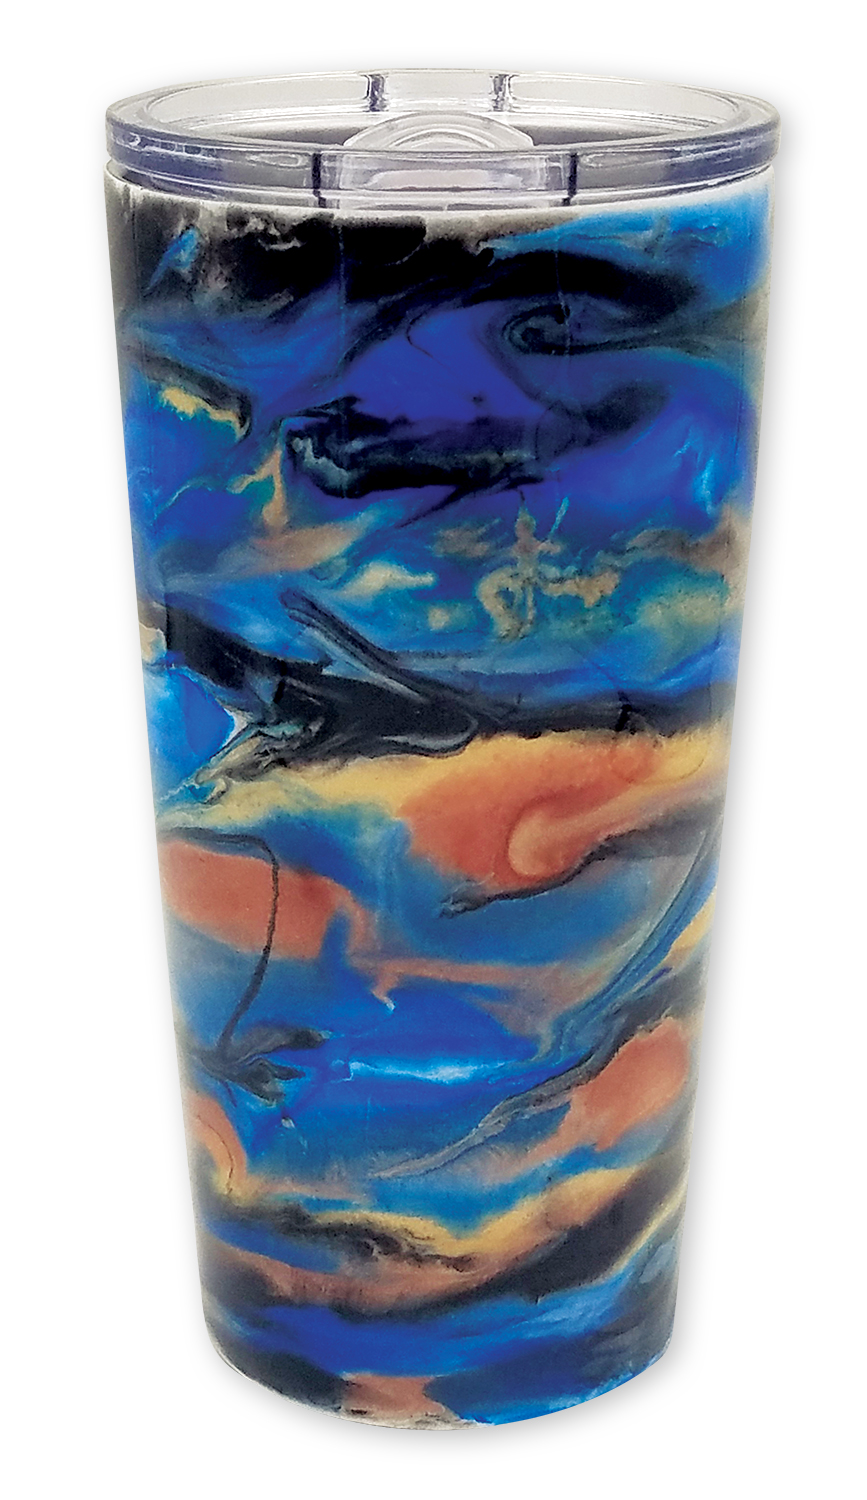 Resin and Pearl Ex tumbler by Cindy Hendrix @spidercreations